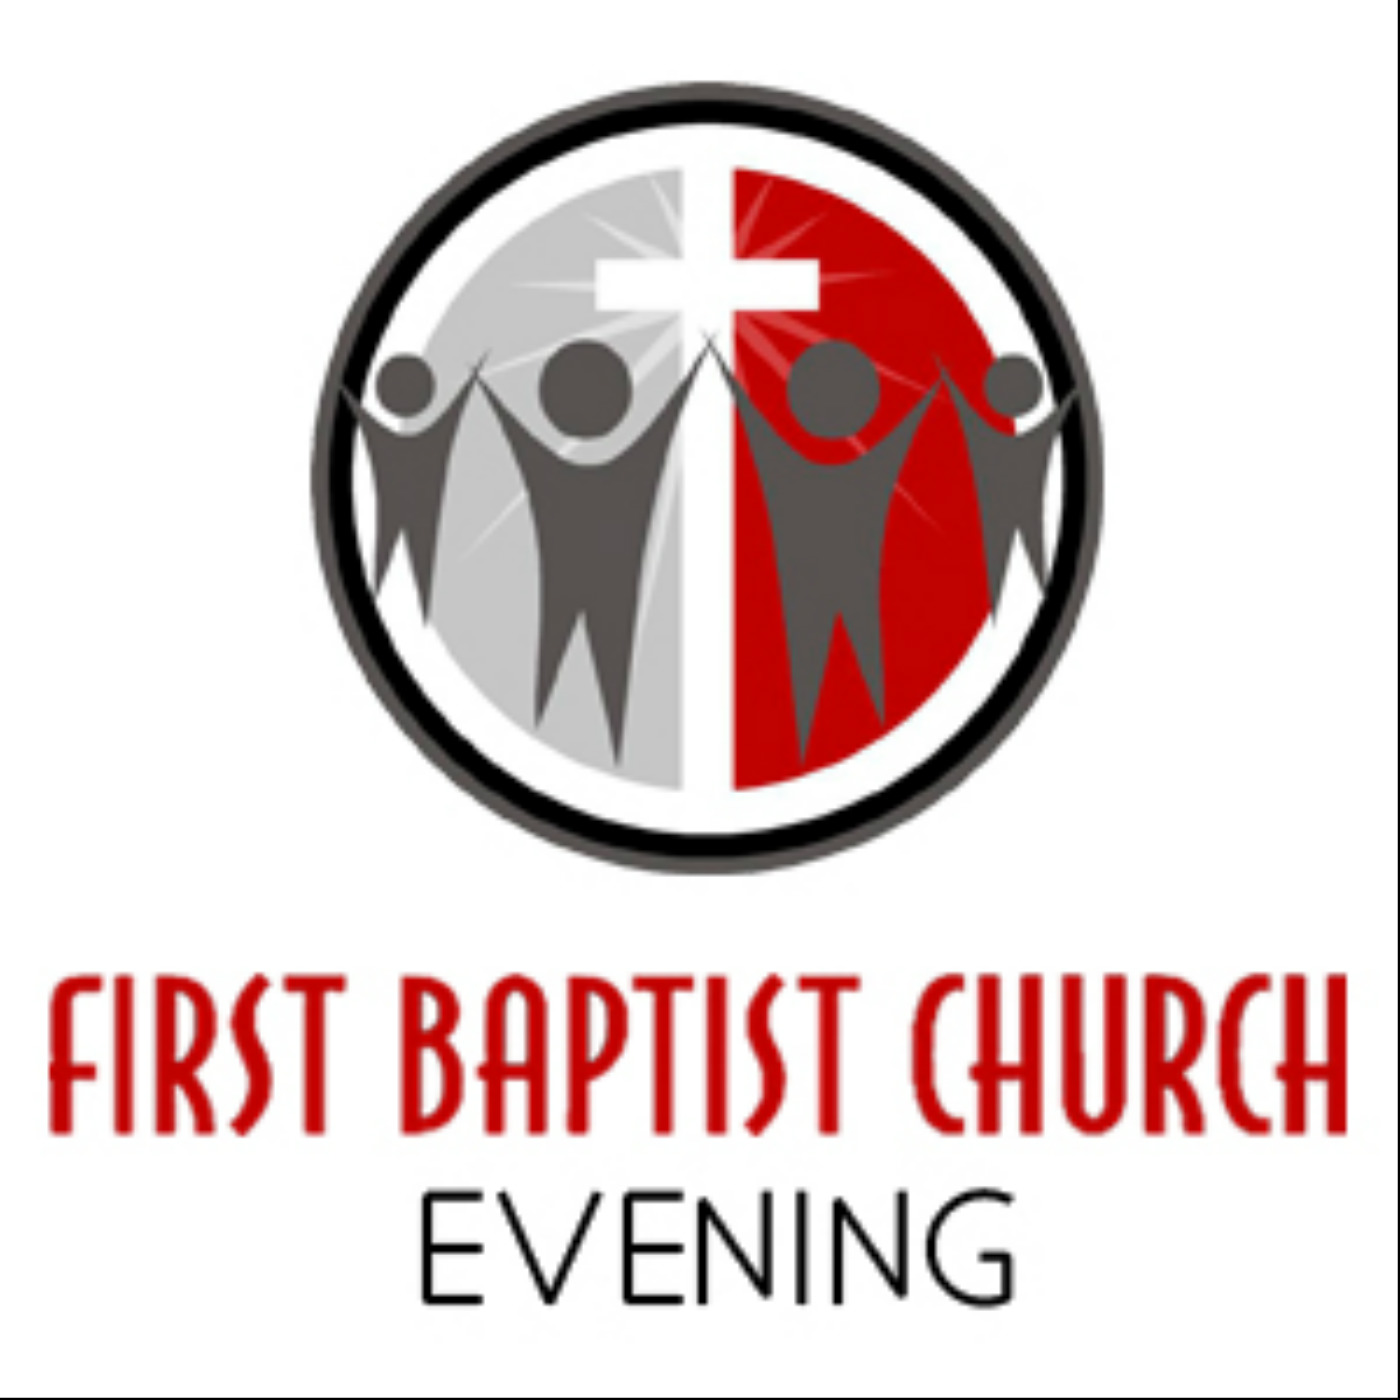 FBC Evening Messages